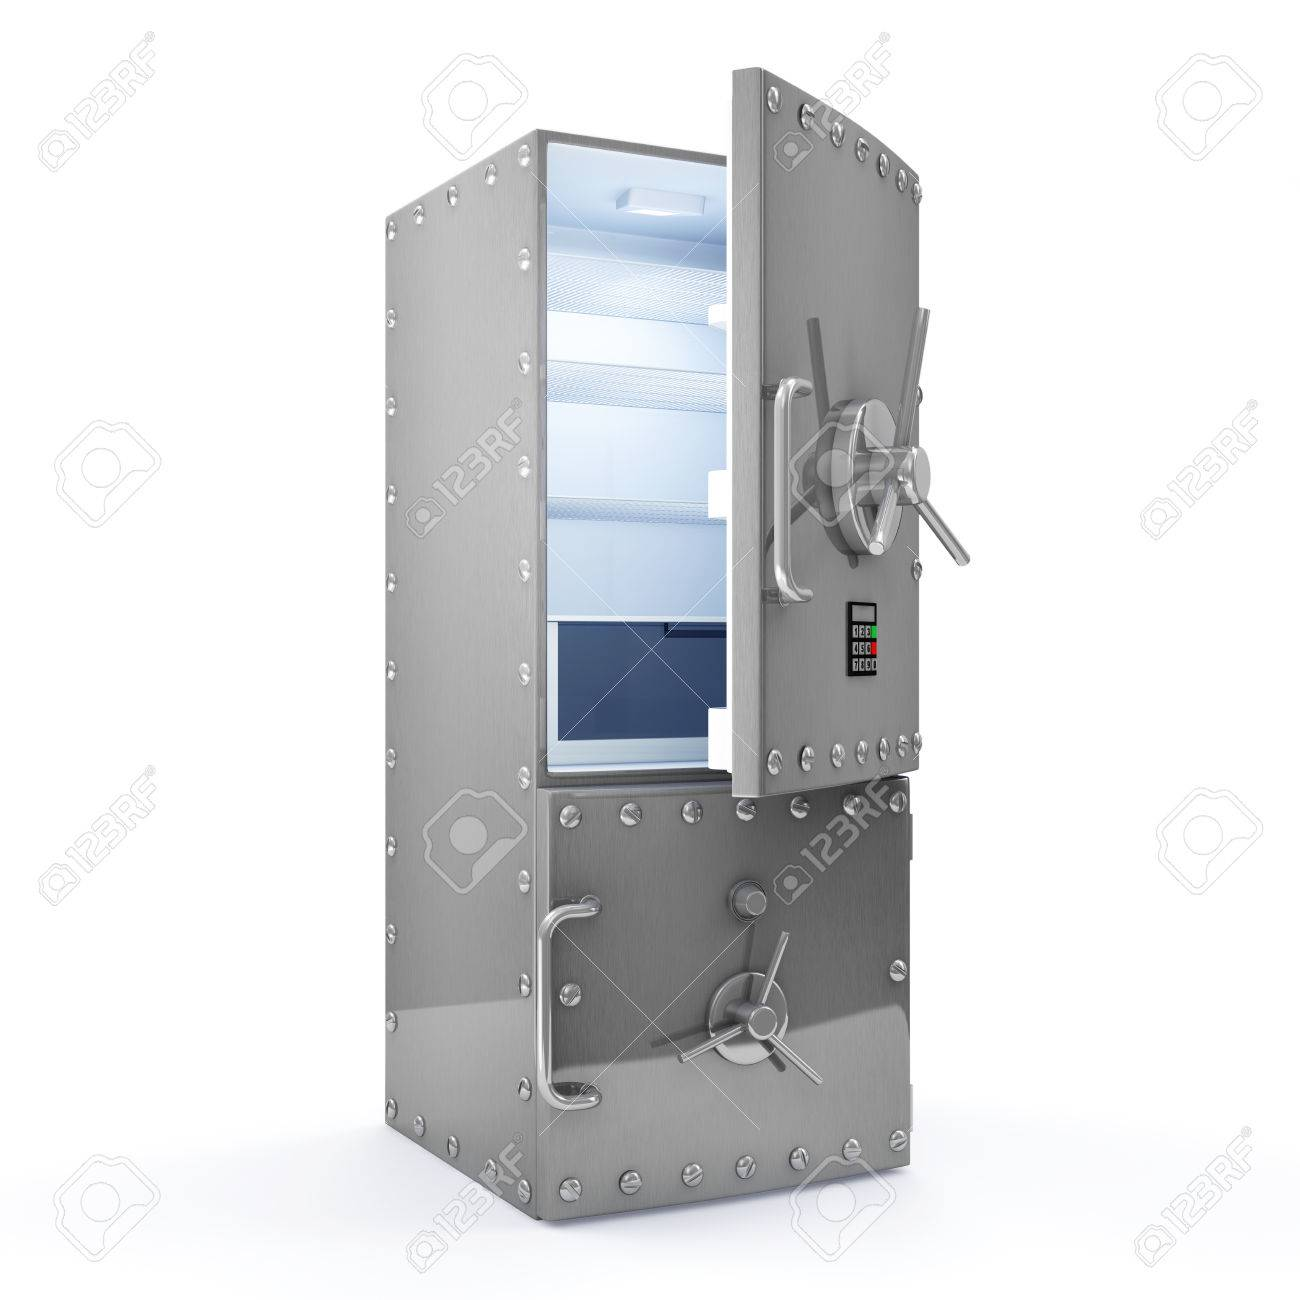 Modern Refrigerator With Opened Safe Door Isolated On White ...